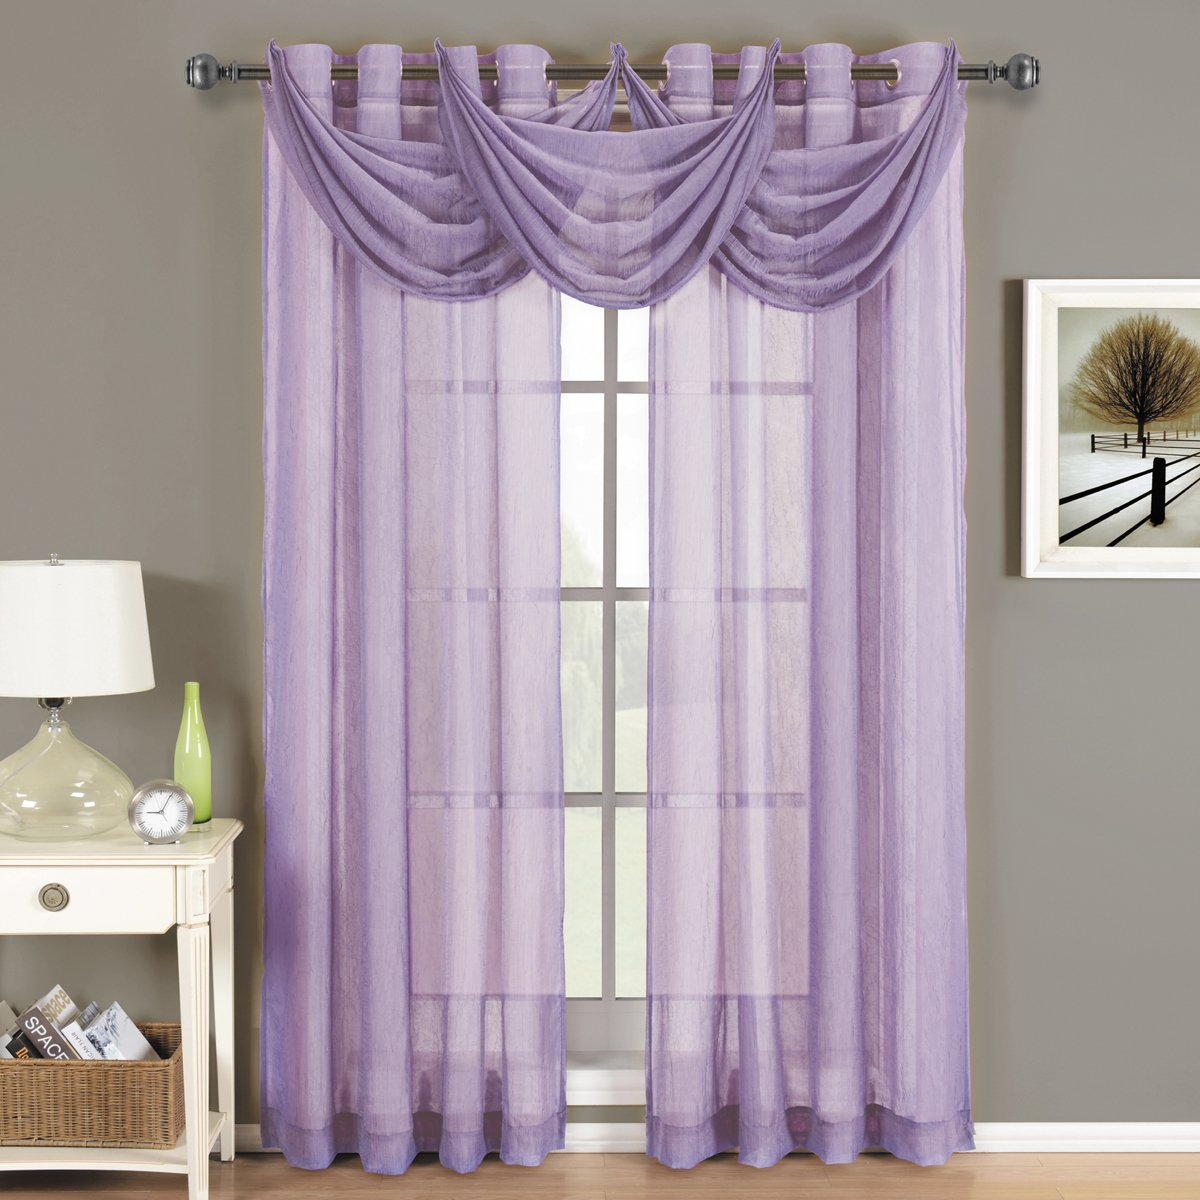 Luxury Abri Lavender Grommet Crushed Sheer Curtain